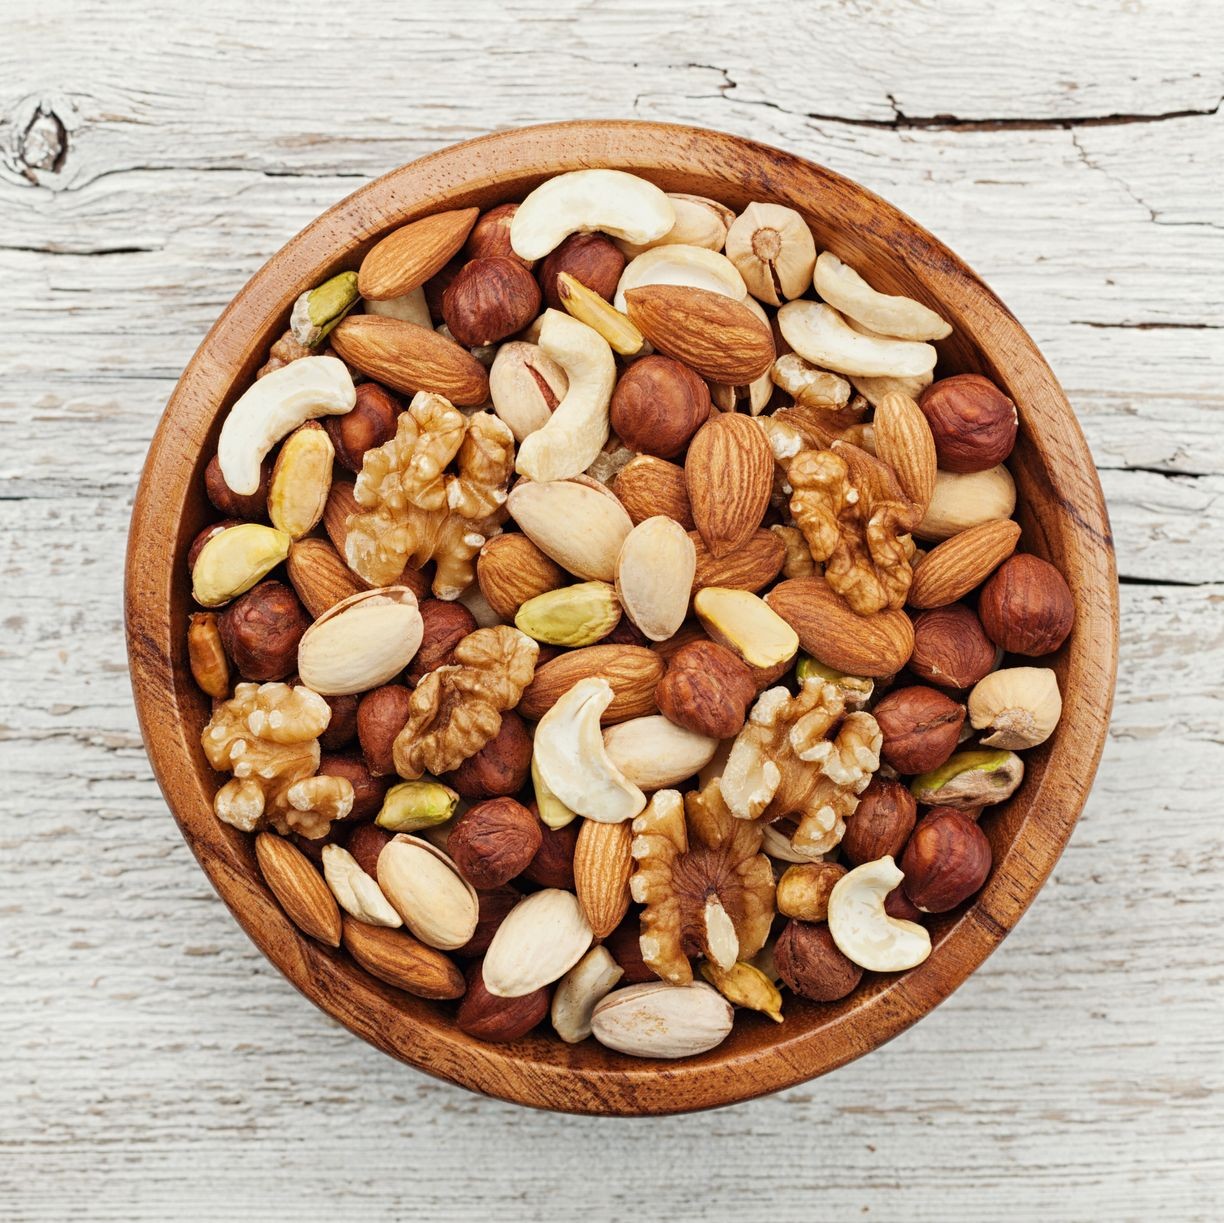 Wooden bowl with nuts. Walnut, pistachios, almonds, hazelnuts. Flat lay.